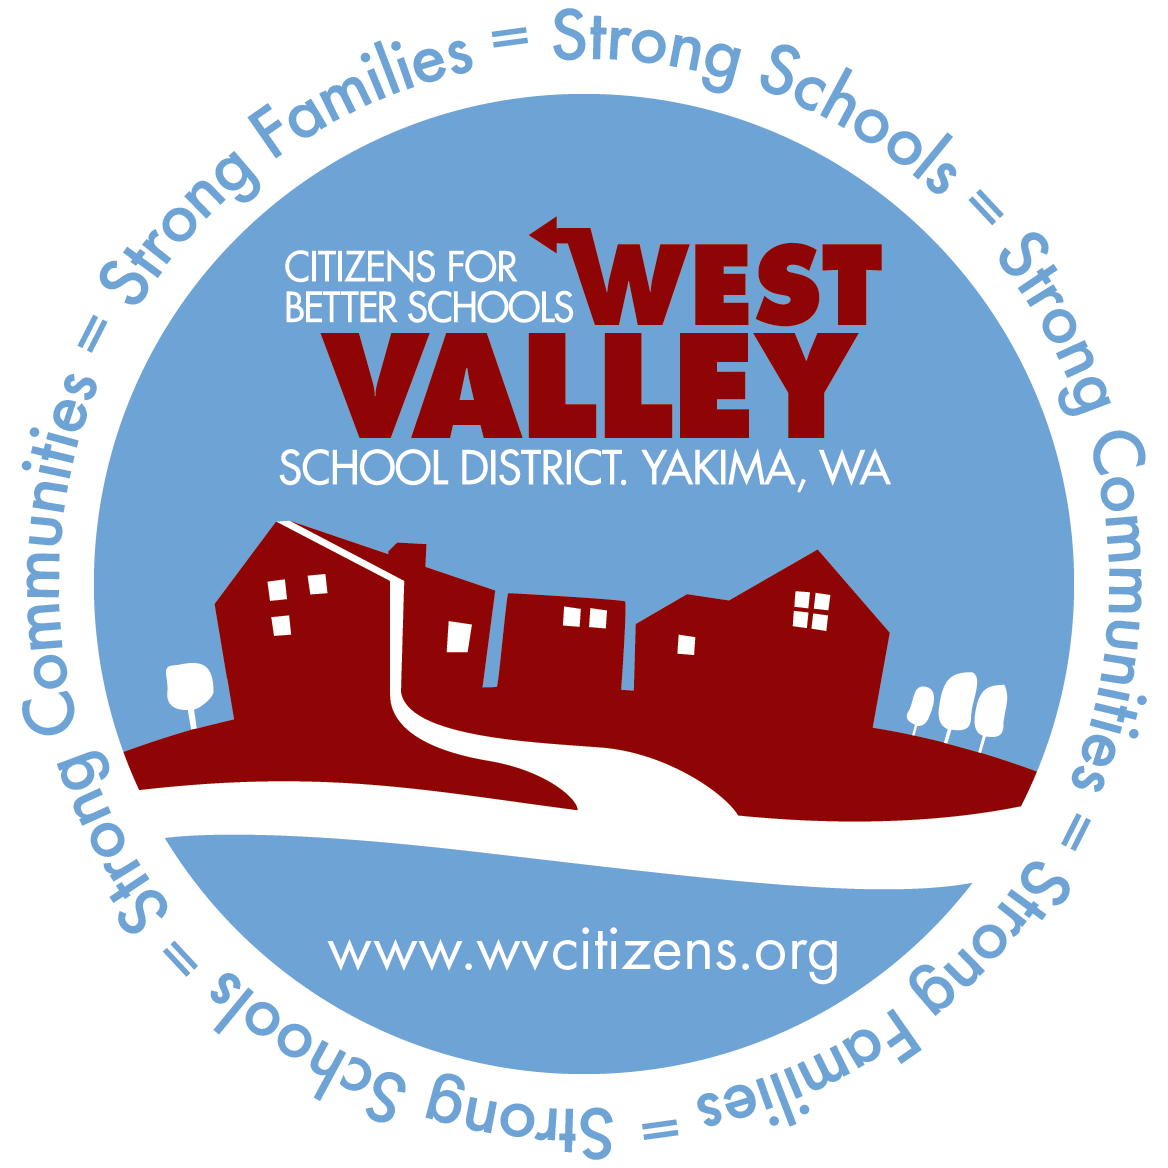 Citizens for Better Schools Logo